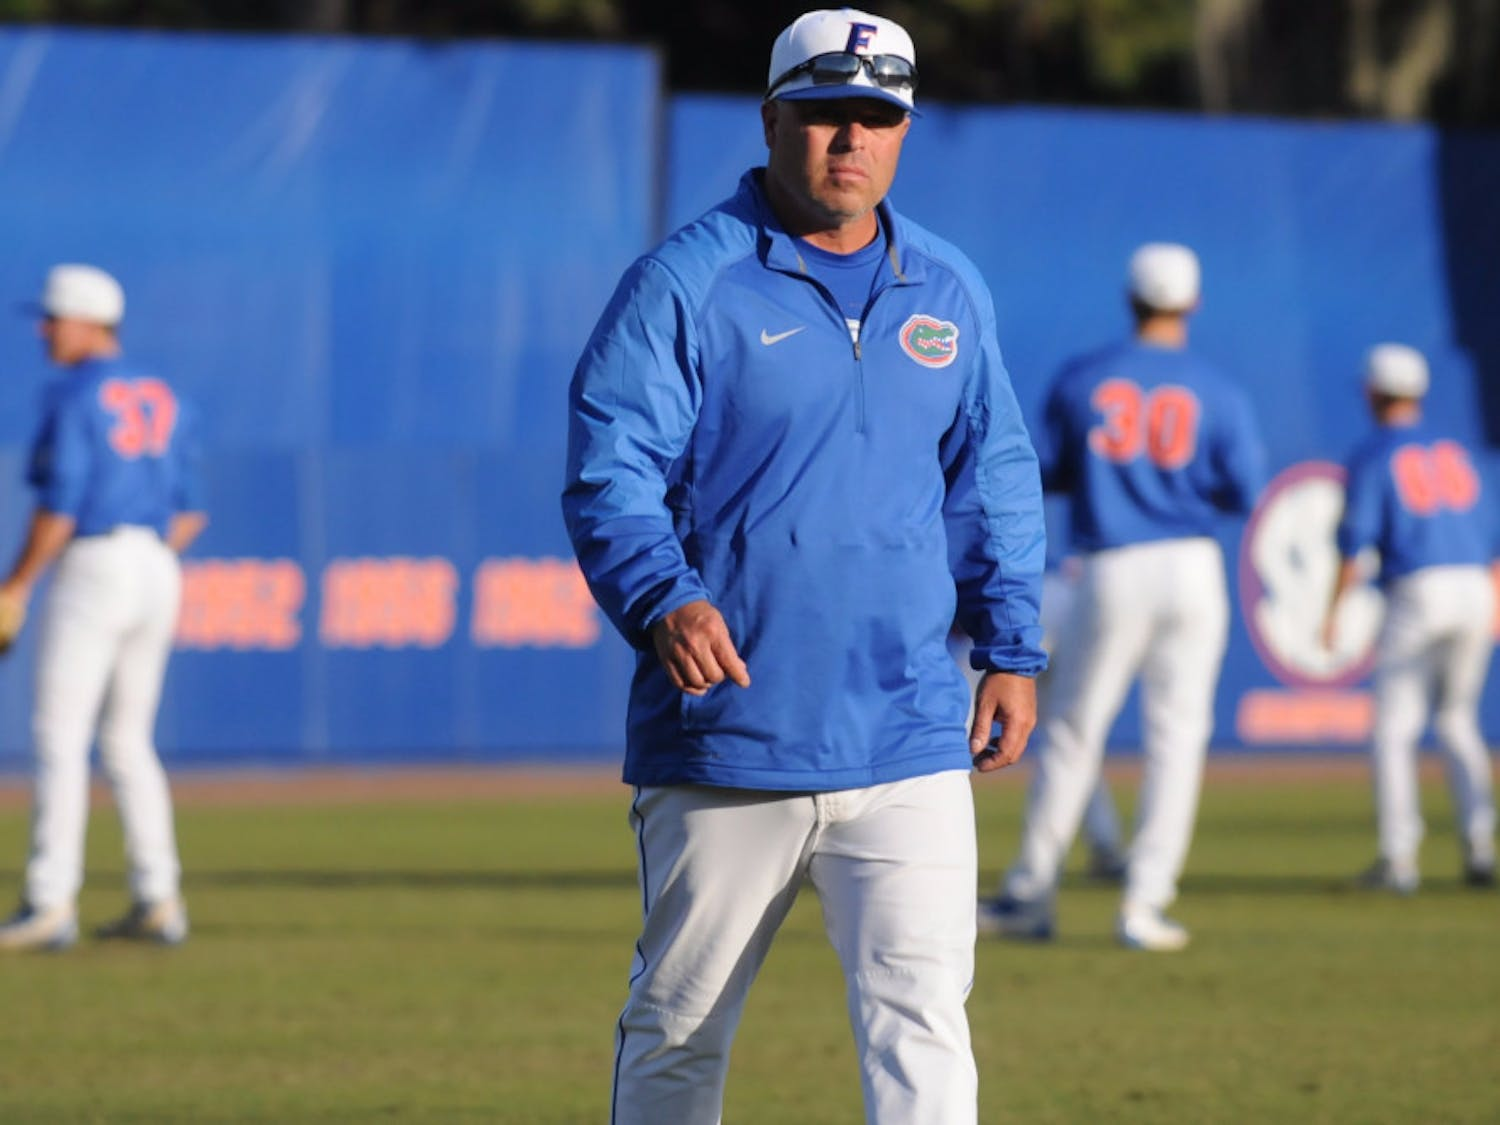 """Coach Kevin O'Sullivan and the Gators dropped their first home game since March 23 in an 8-4 loss against Jacksonville Tuesday night.""""We've gotta clean up some mistakes,"""" O'Sullivan said."""